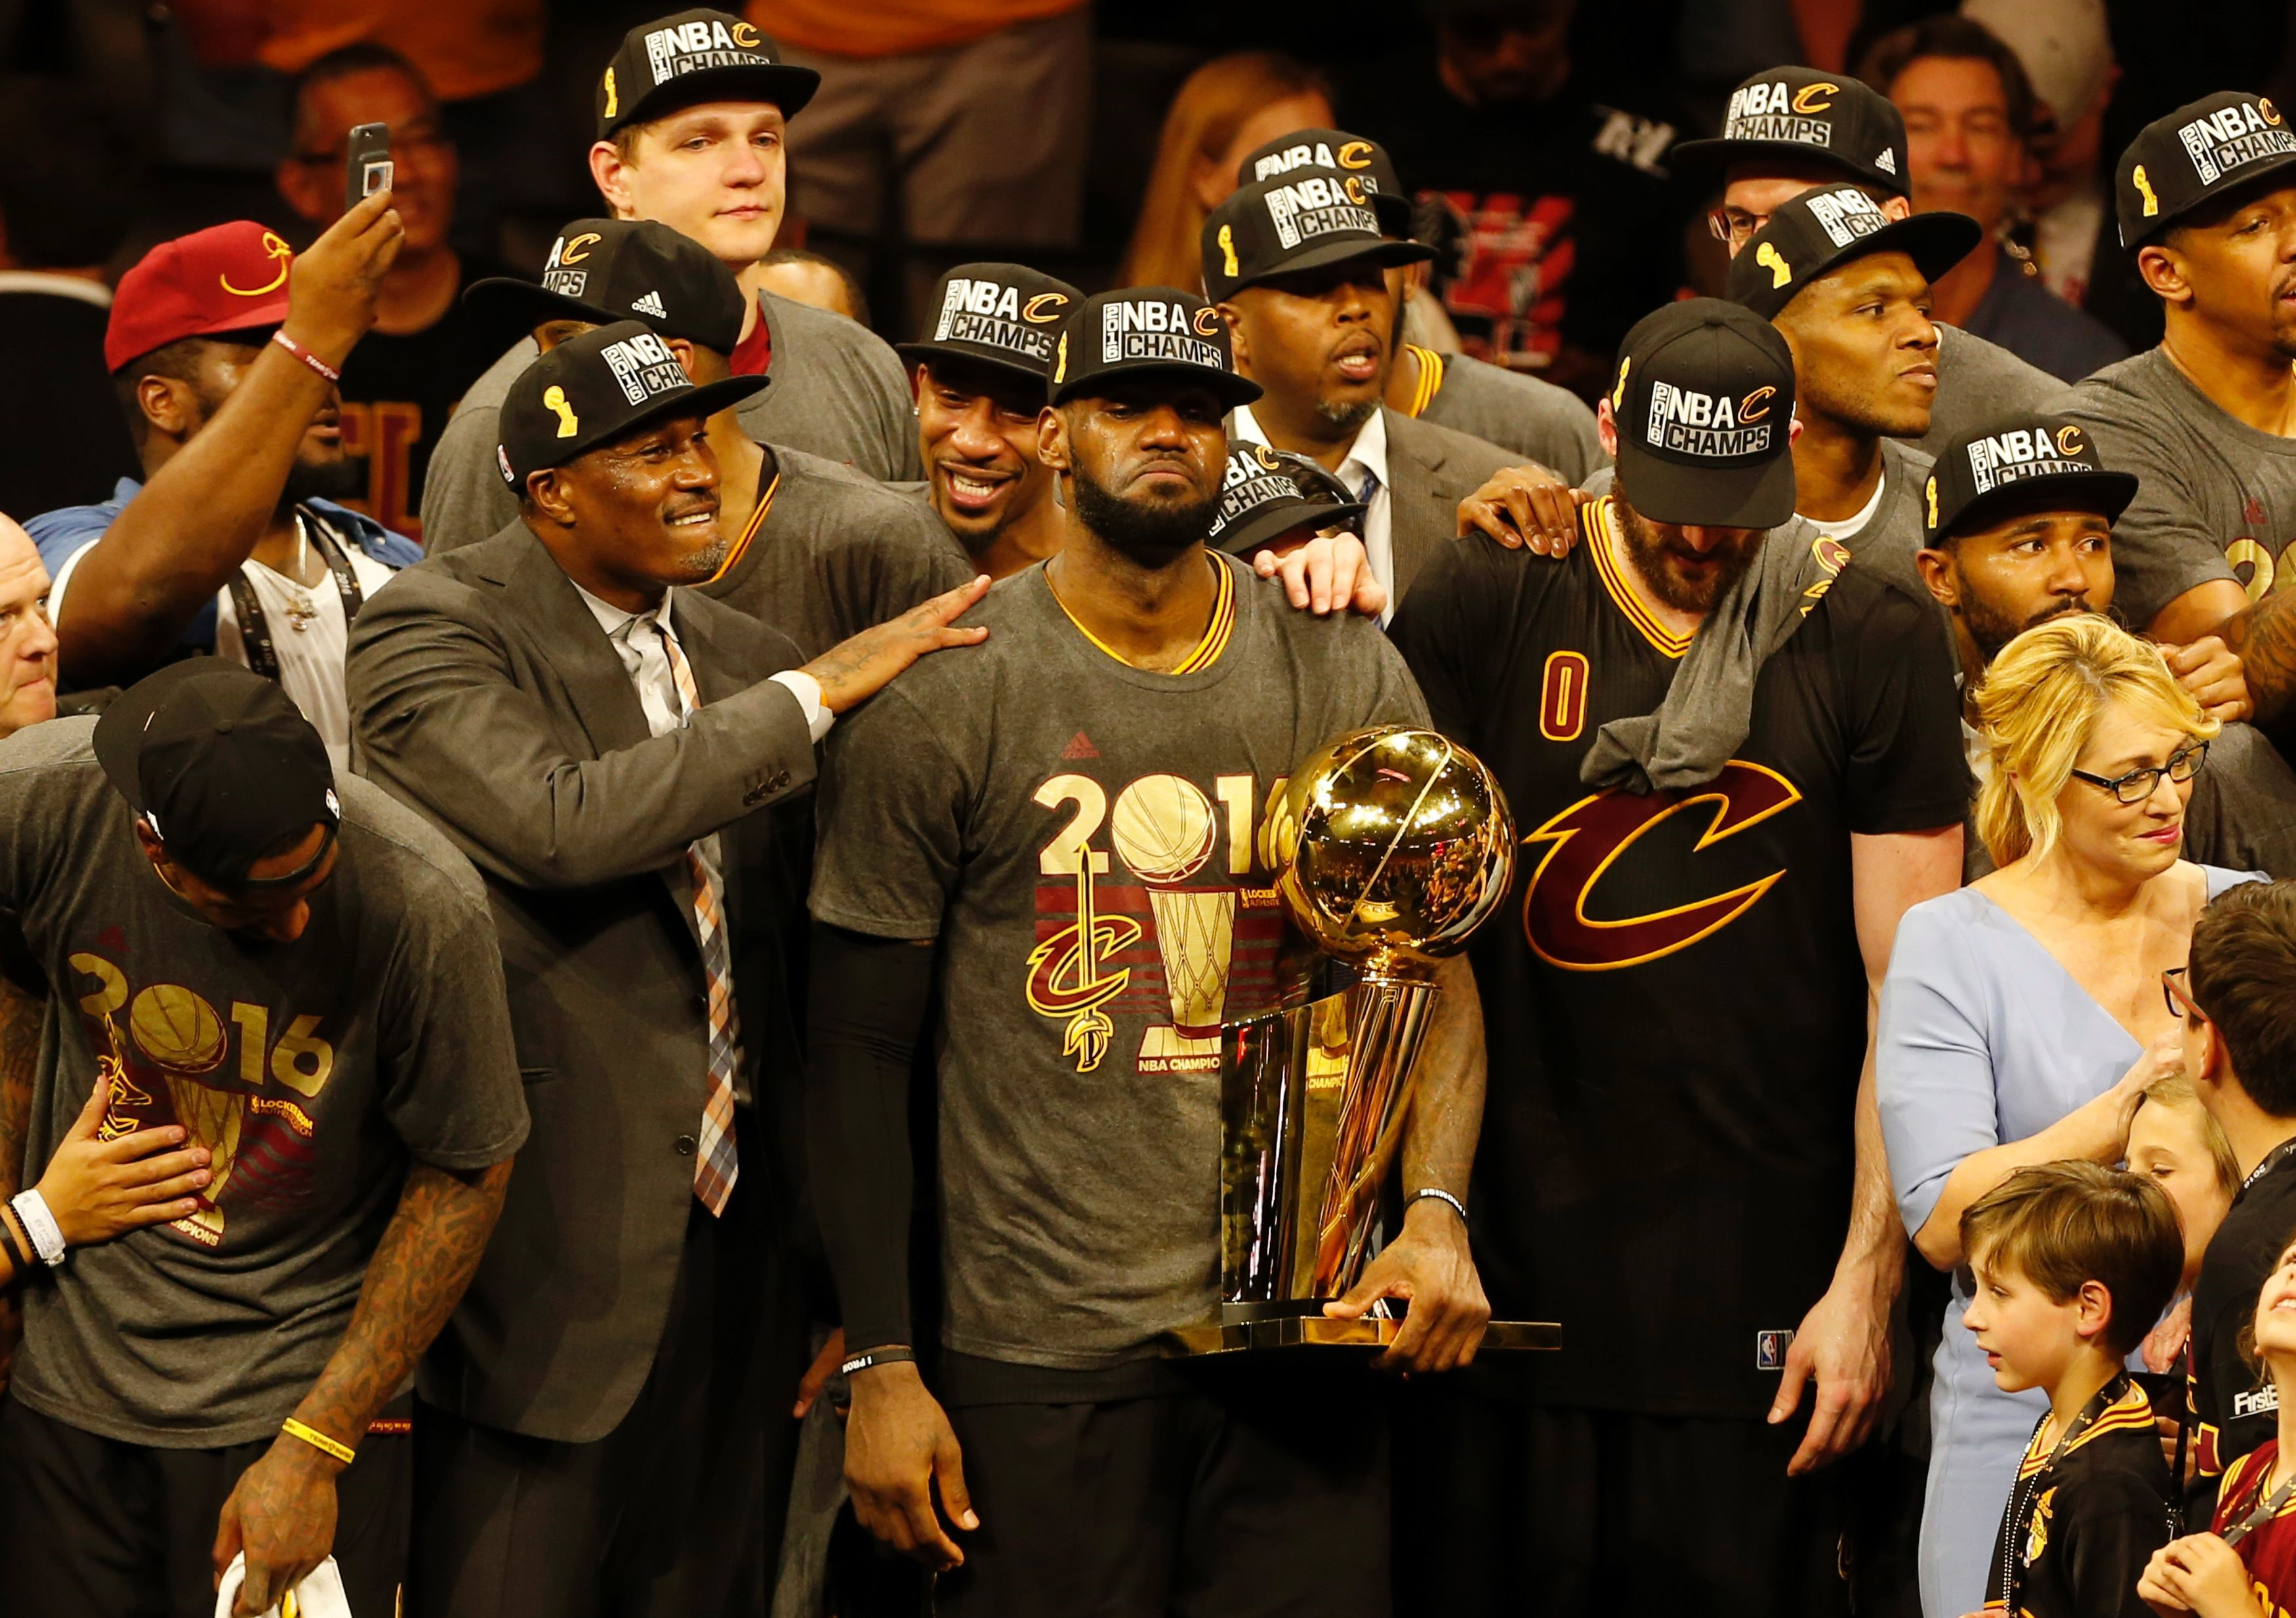 Cleveland Cavaliers forward LeBron James reacts while holding the Larry O'Brien trophy after defeating the Gold State Warriors to win the NBA Finals on June 19, 2016 in Oakland, California